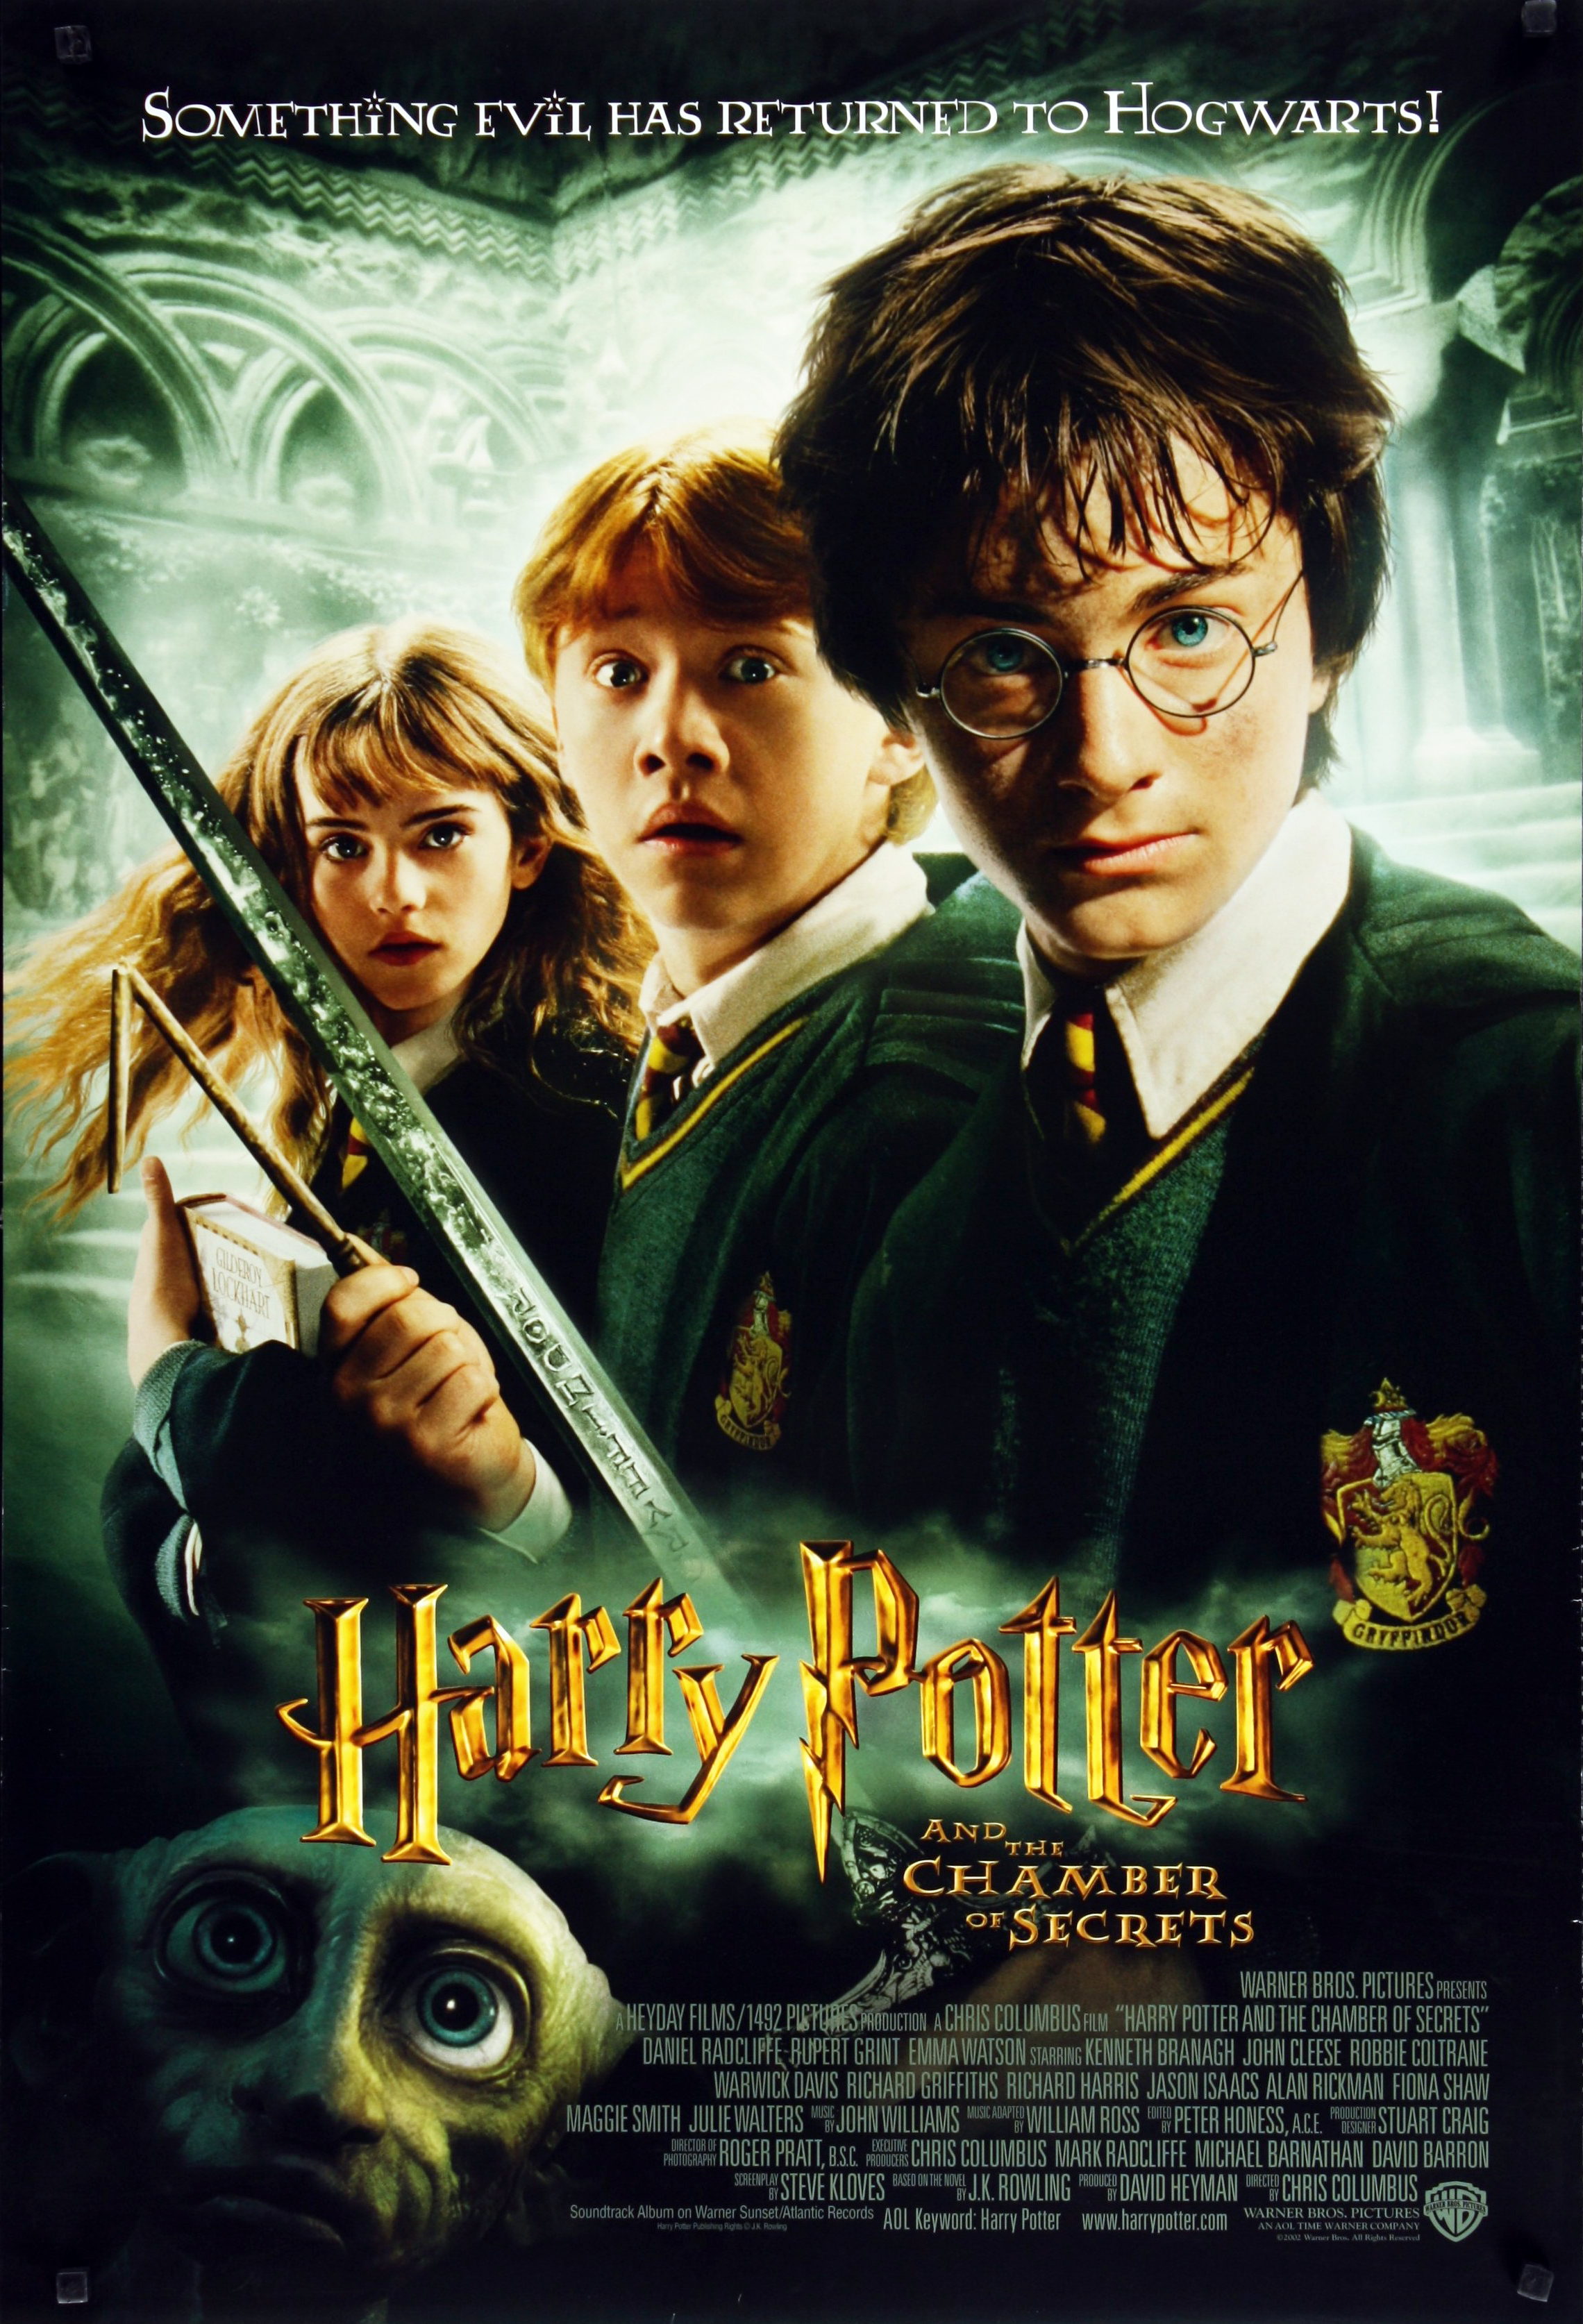 Harry Potter and the Chamber of Secrets (film)